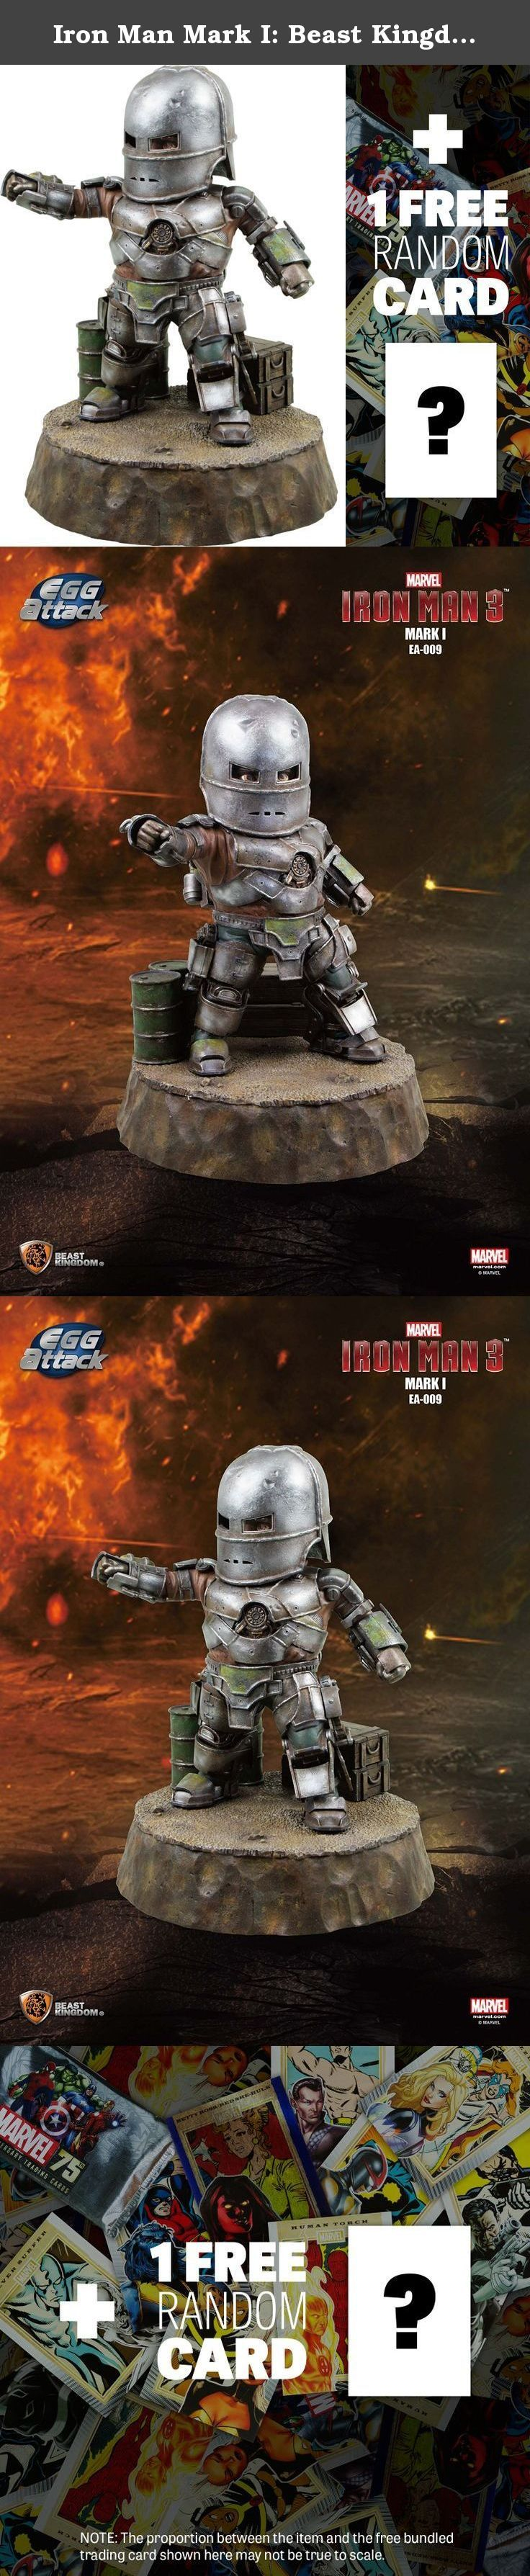 Iron Man Mark I: Beast Kingdom Egg Attack x Iron Man 3 Statue + 1 FREE Official Marvel Trading Card Bundle. Iron Man Mk.I as a polystone statue! A ~7.8 inch polystone figure of the Iron Man Mark I armor from Beast Kingdom! From the movie 'Iron Man 3' comes a figure of the original Iron Man Mark I armor, seemingly built from various odds and ends. The figure has been very intricately sculpted, with color job that faithfully reproduces the metallic appearance of the armor. The reactor in…